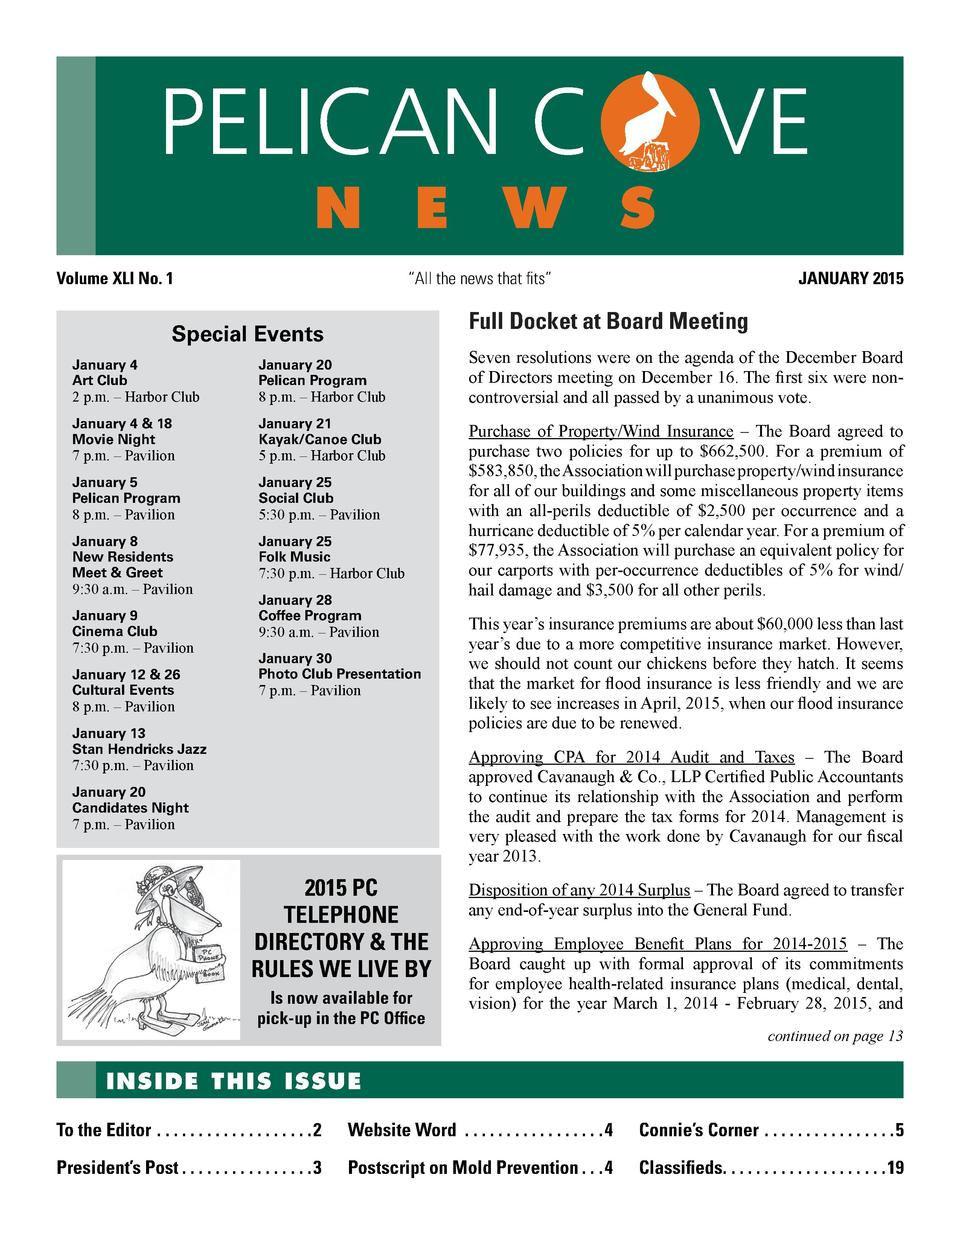 PELICAN C  n e w s  Volume XLI No. 1  VE JANUARY 2015     All the news that fits     Full Docket at Board Meeting  Special...